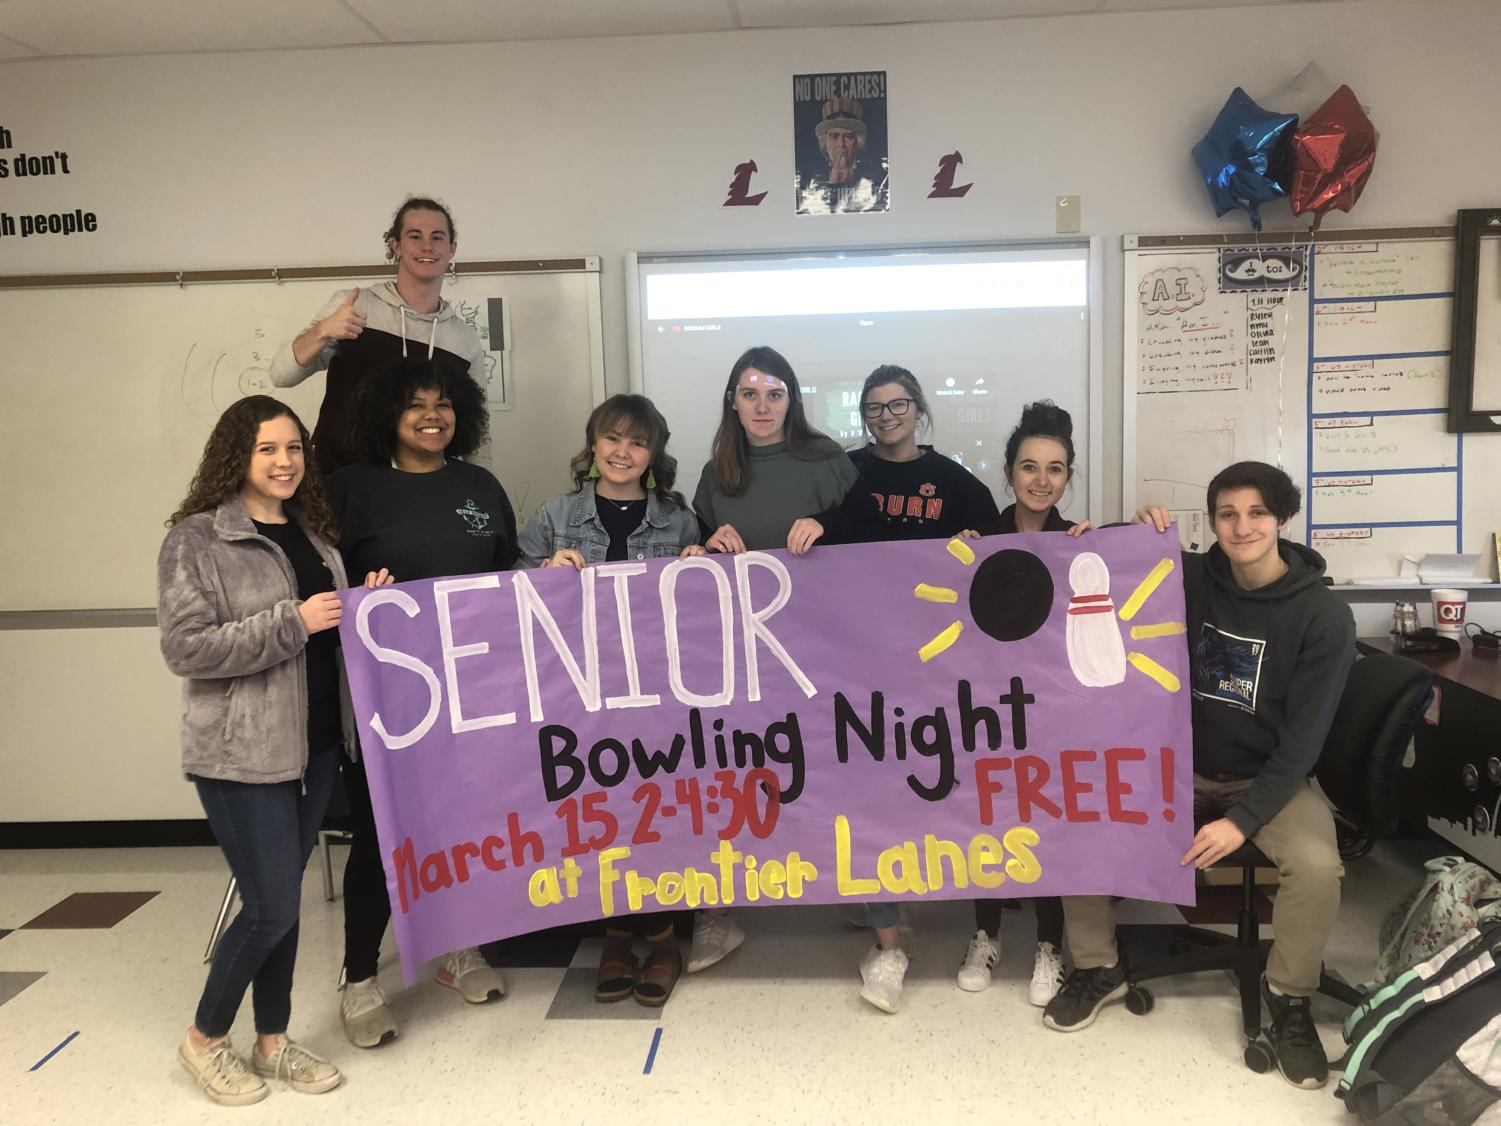 On Friday, March 15, after being released early from school, seniors have the choice to unlimited and free bowling from 2-4:30 p.m. at Frontier Lanes.